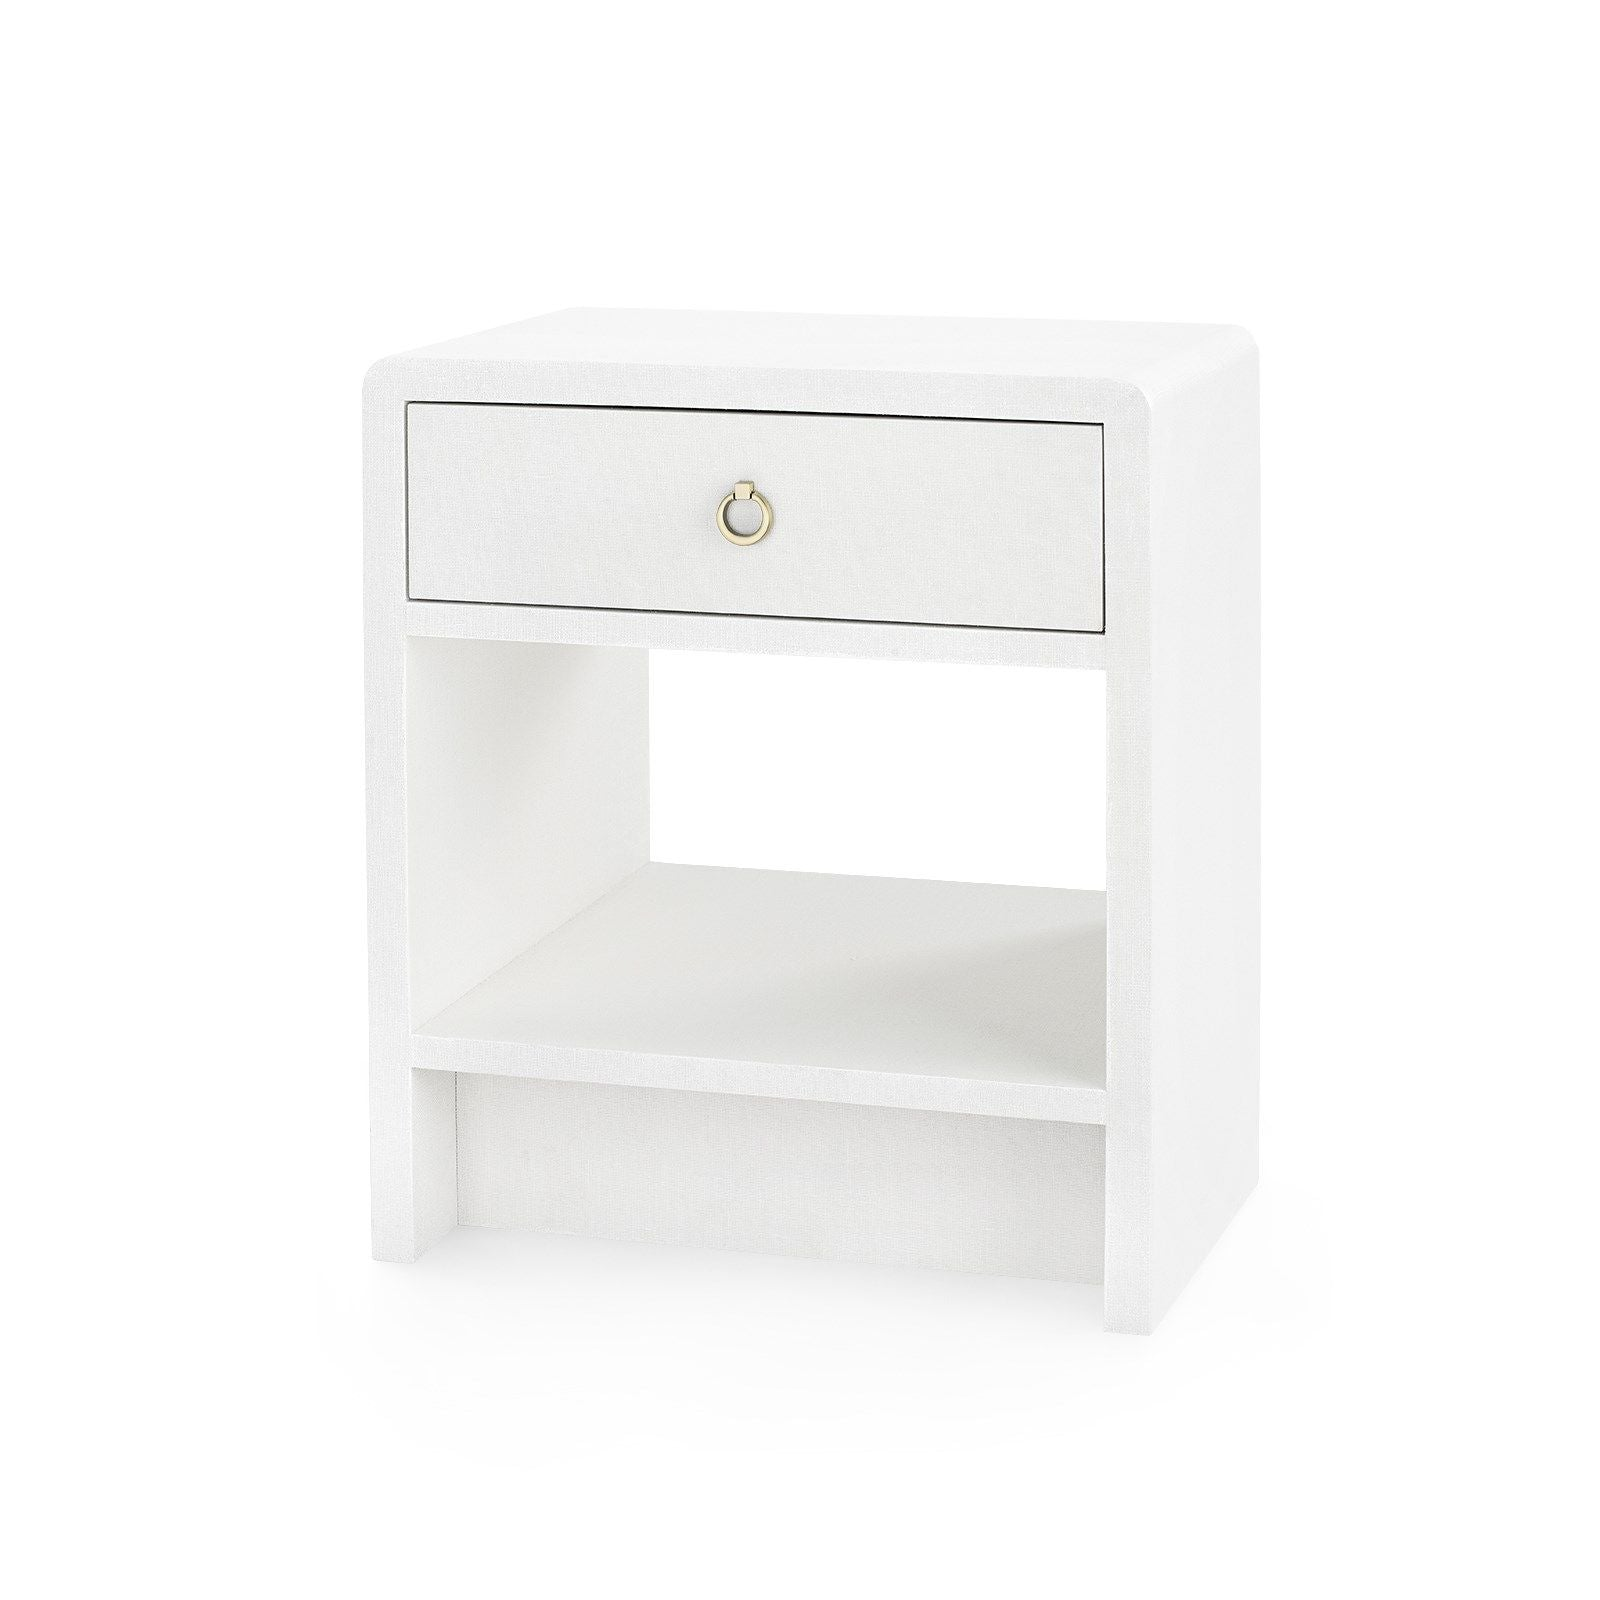 Bungalow 5 - BENJAMIN 1-DRAWER SIDE TABLE, WHITE LINEN-Bungalow 5-Blue Hand Home